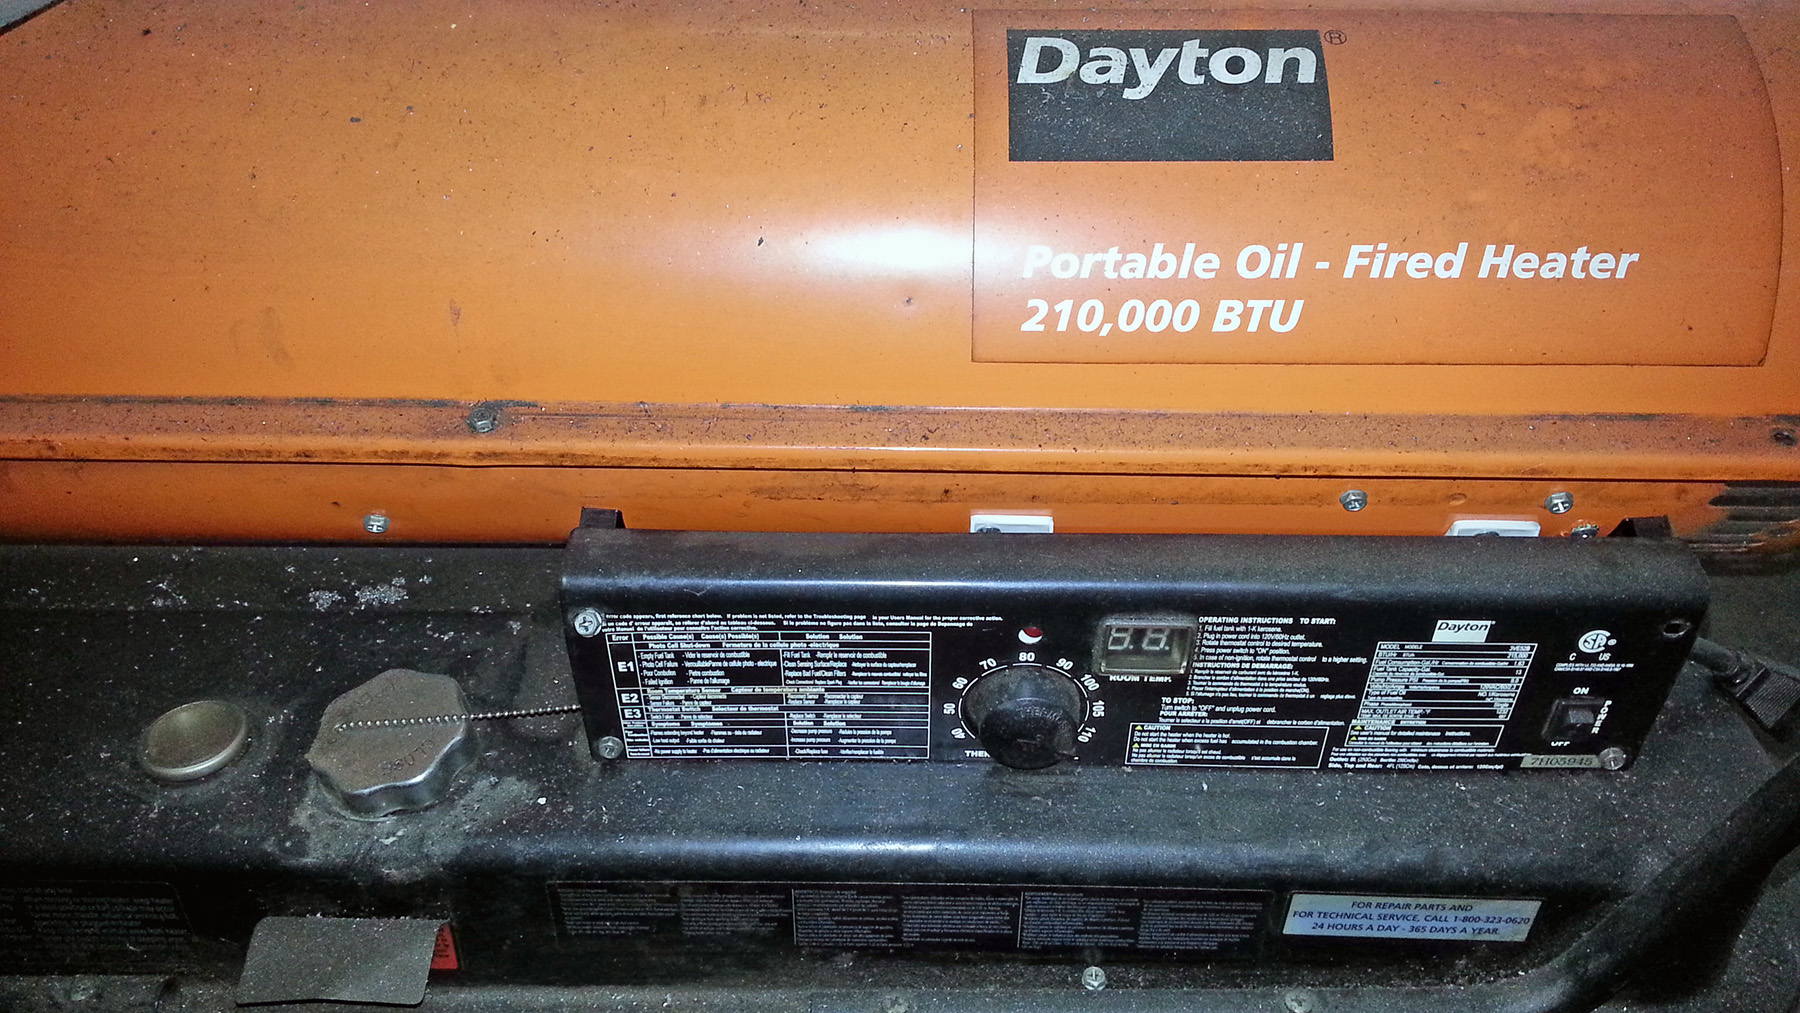 USED, 215,000 BTU DAYTON MODEL 3VE52B PORTABLE OIL-FIRED SPACE HEATER